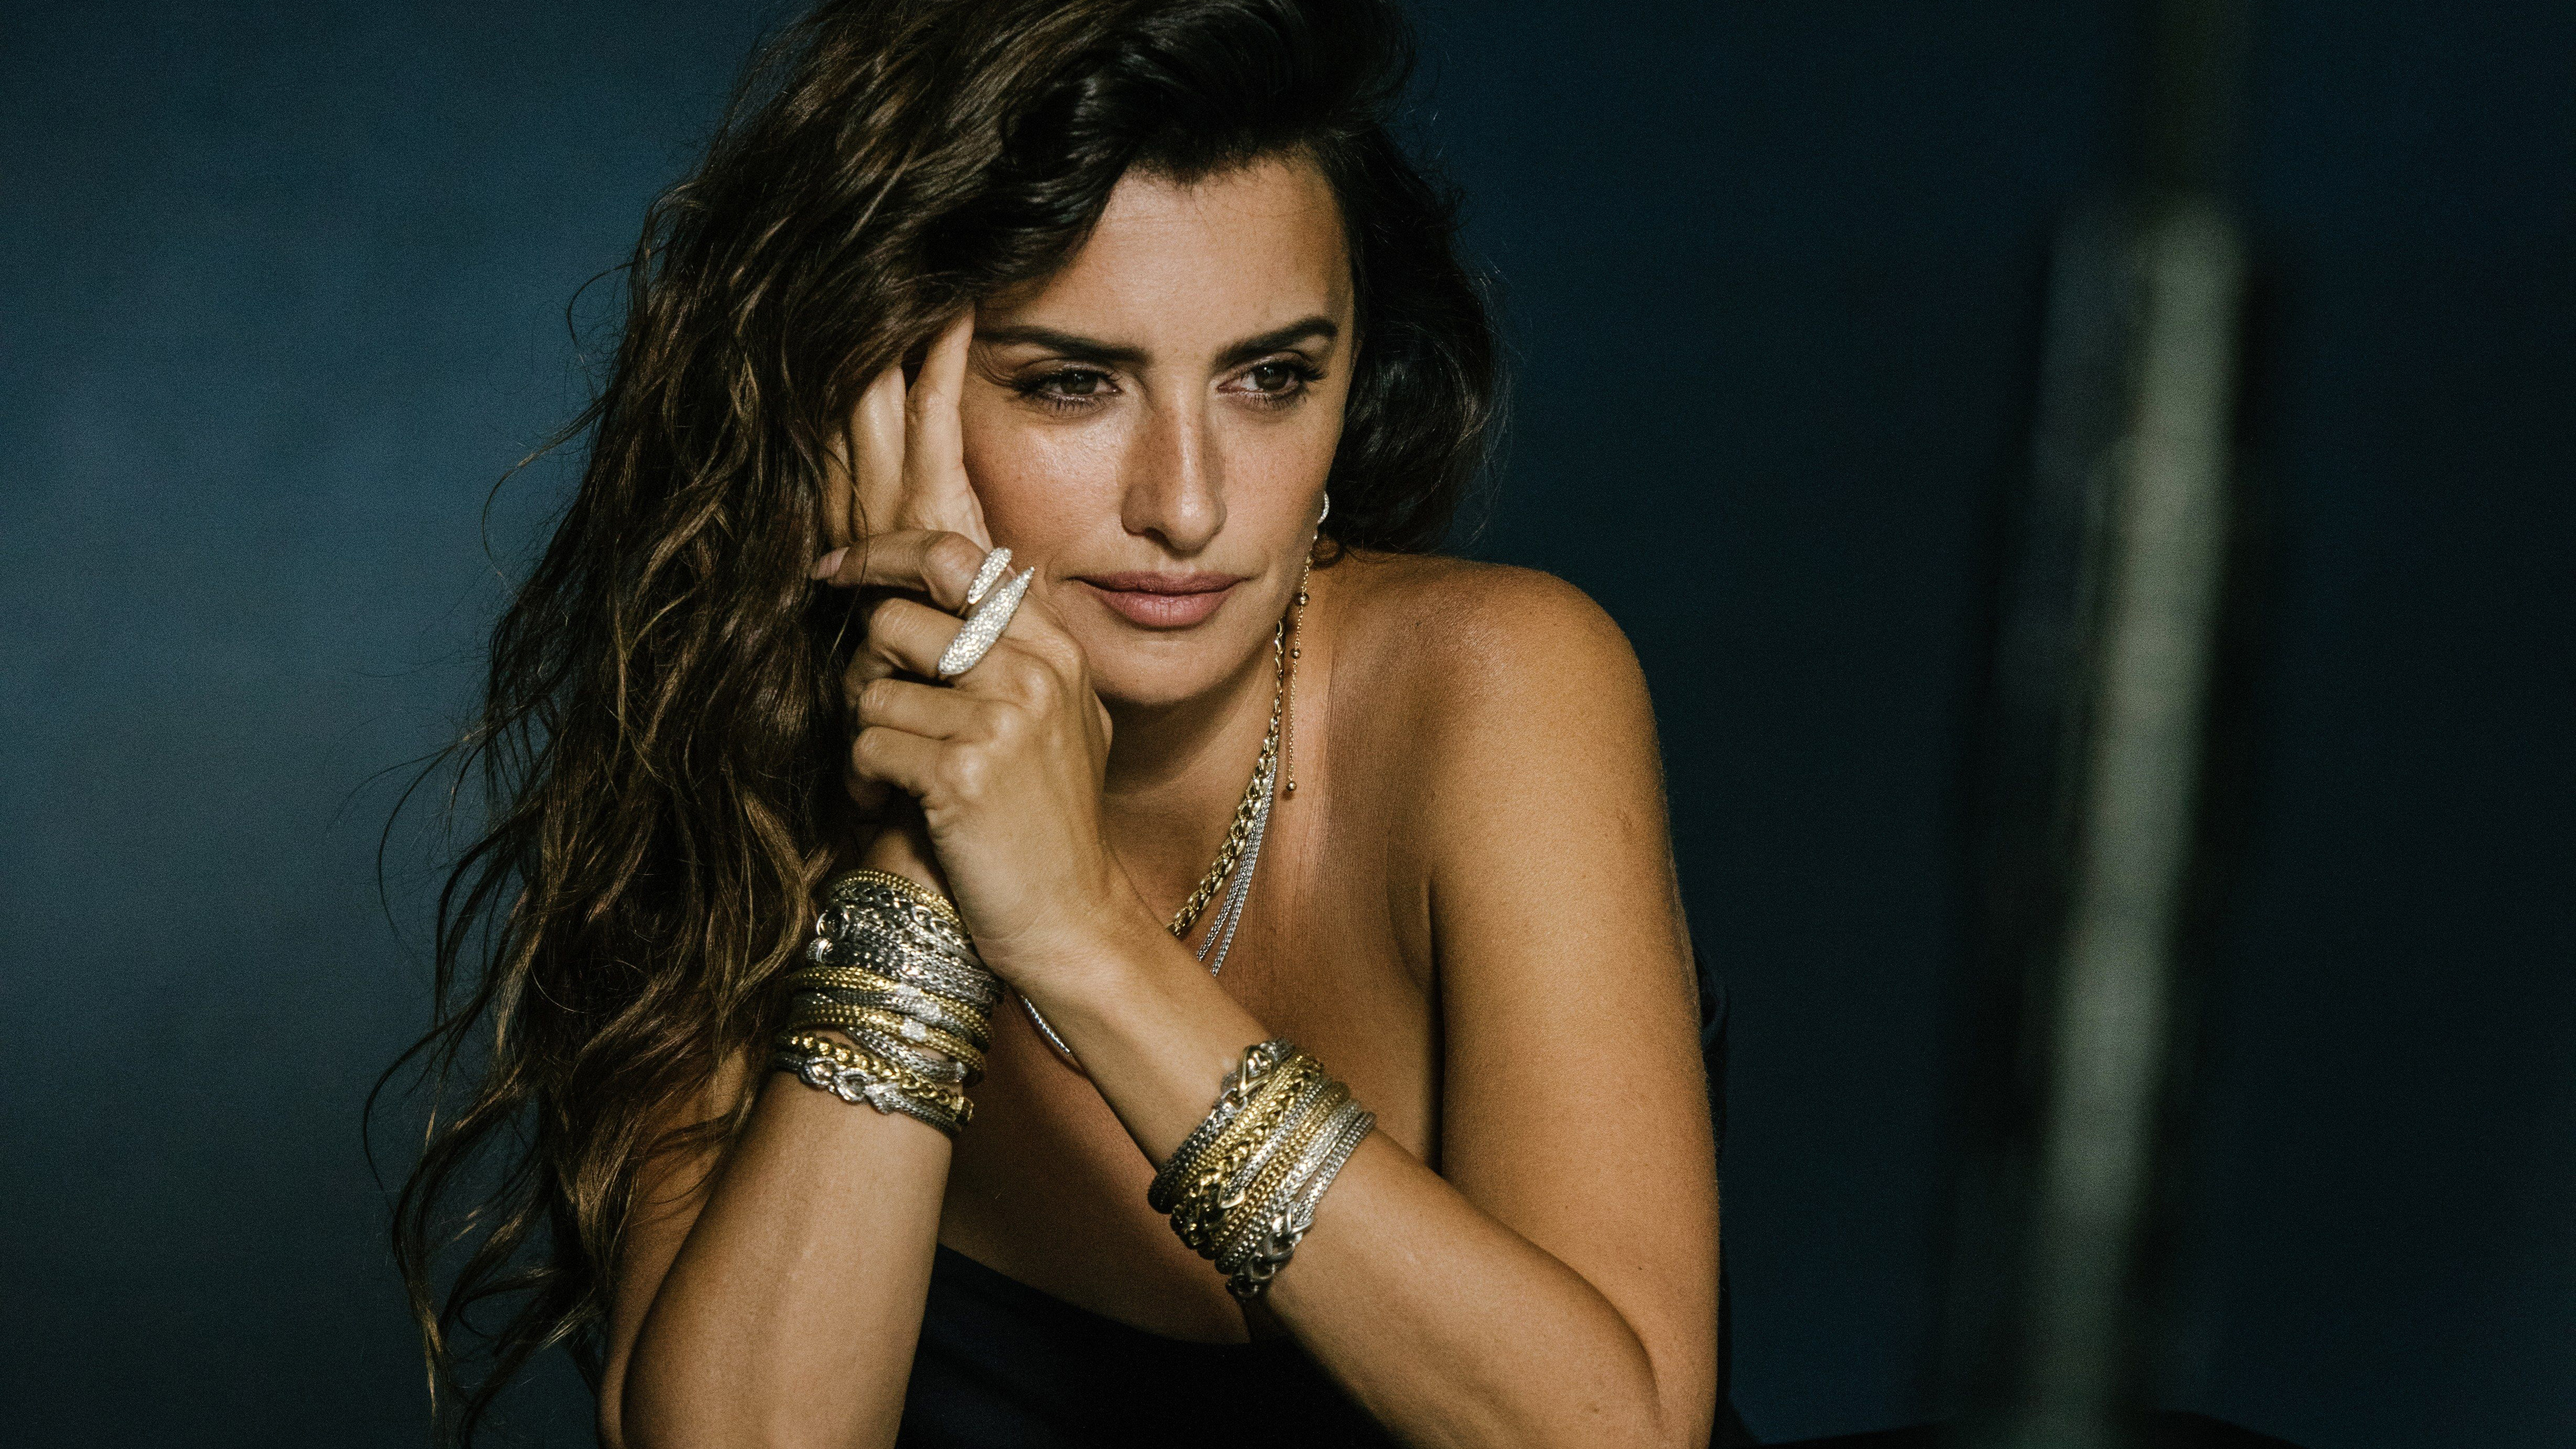 penelope cruz 2019 new 1558220651 - Penelope Cruz 2019 New - penelope cruz wallpapers, hd-wallpapers, girls wallpapers, celebrities wallpapers, 4k-wallpapers